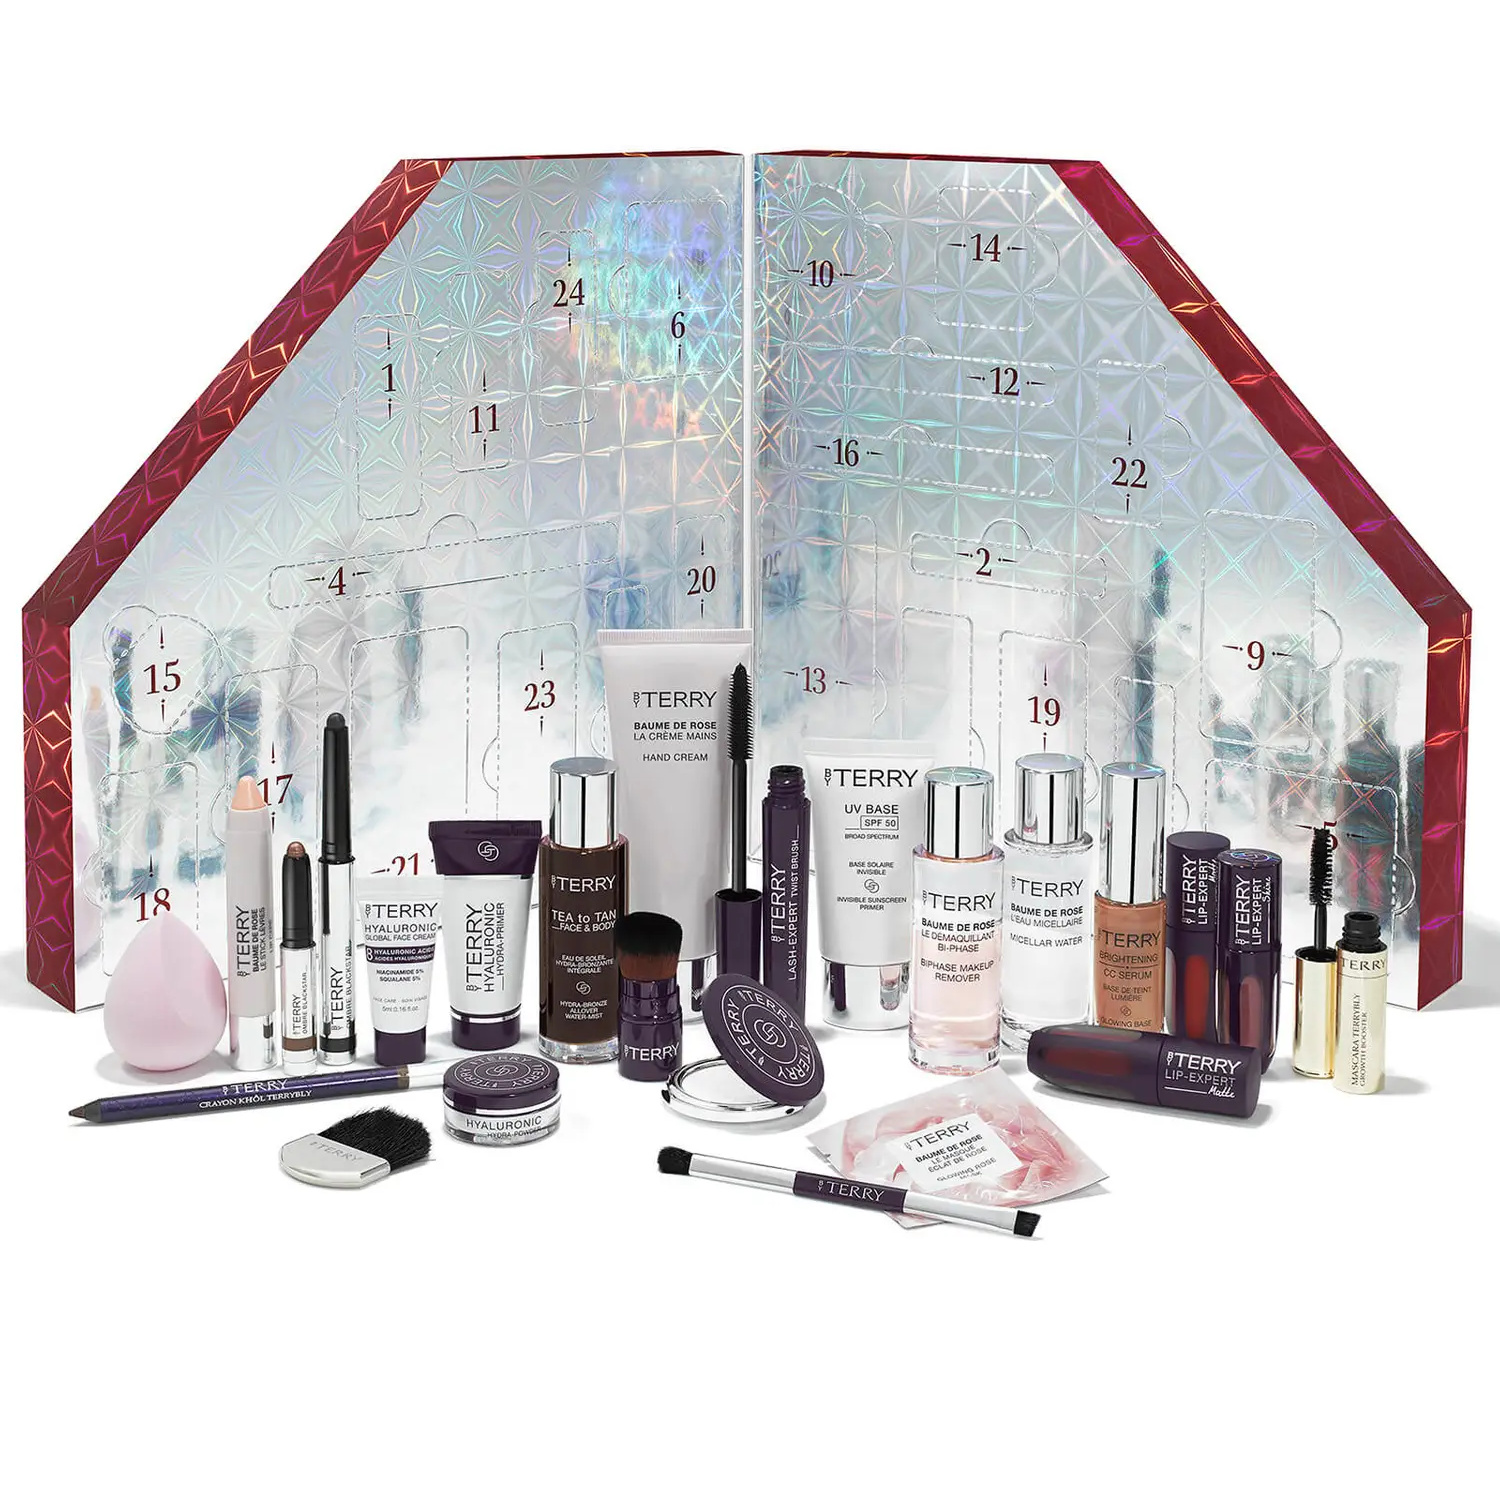 By Terry Jewel Fantasy Advent Calendar 2021 Contents Reveal!